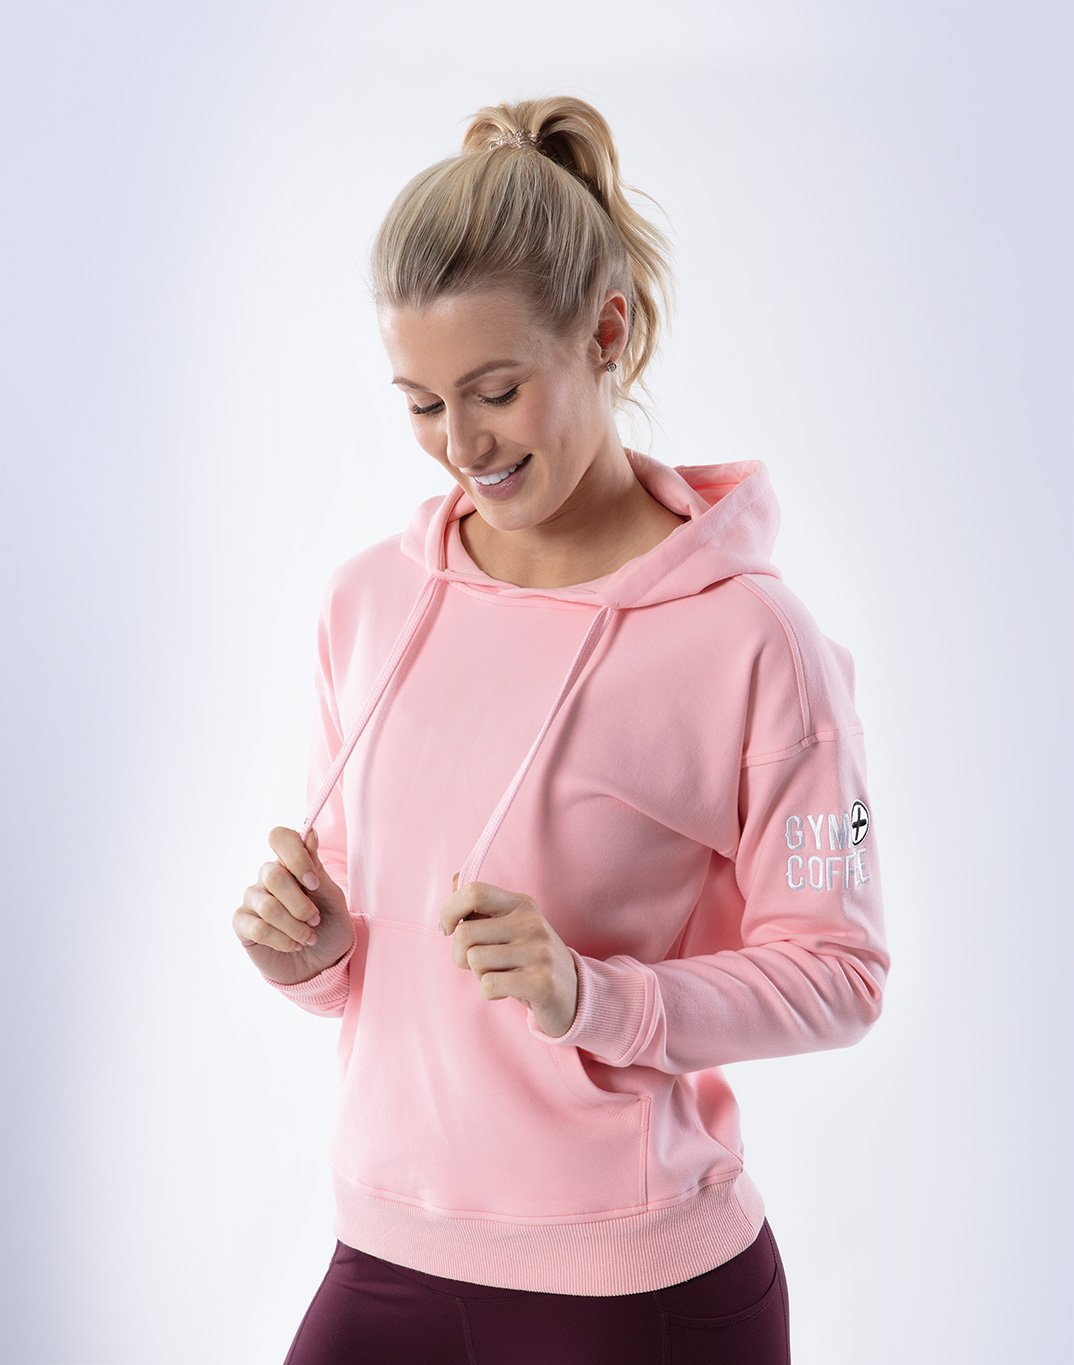 Gym Plus Coffee Hoodie Pullover Hoodie in Baby Pink Designed in Ireland